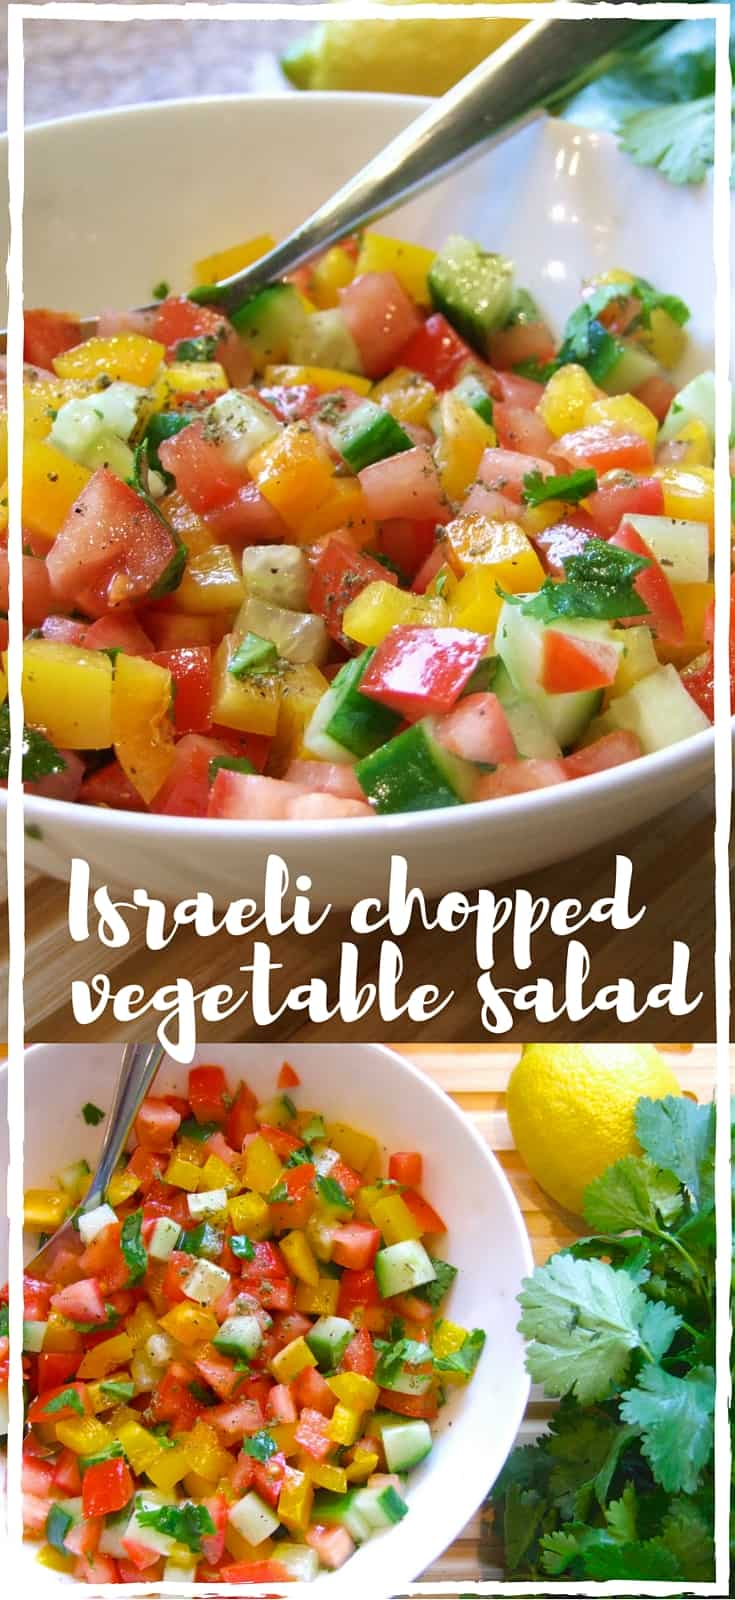 Diced fresh, ripe vegetables, lightly dressed with olive oil, lemon juice & herbs - delicious! Serve with falafel, shakshuka, or even eat it for breakfast!